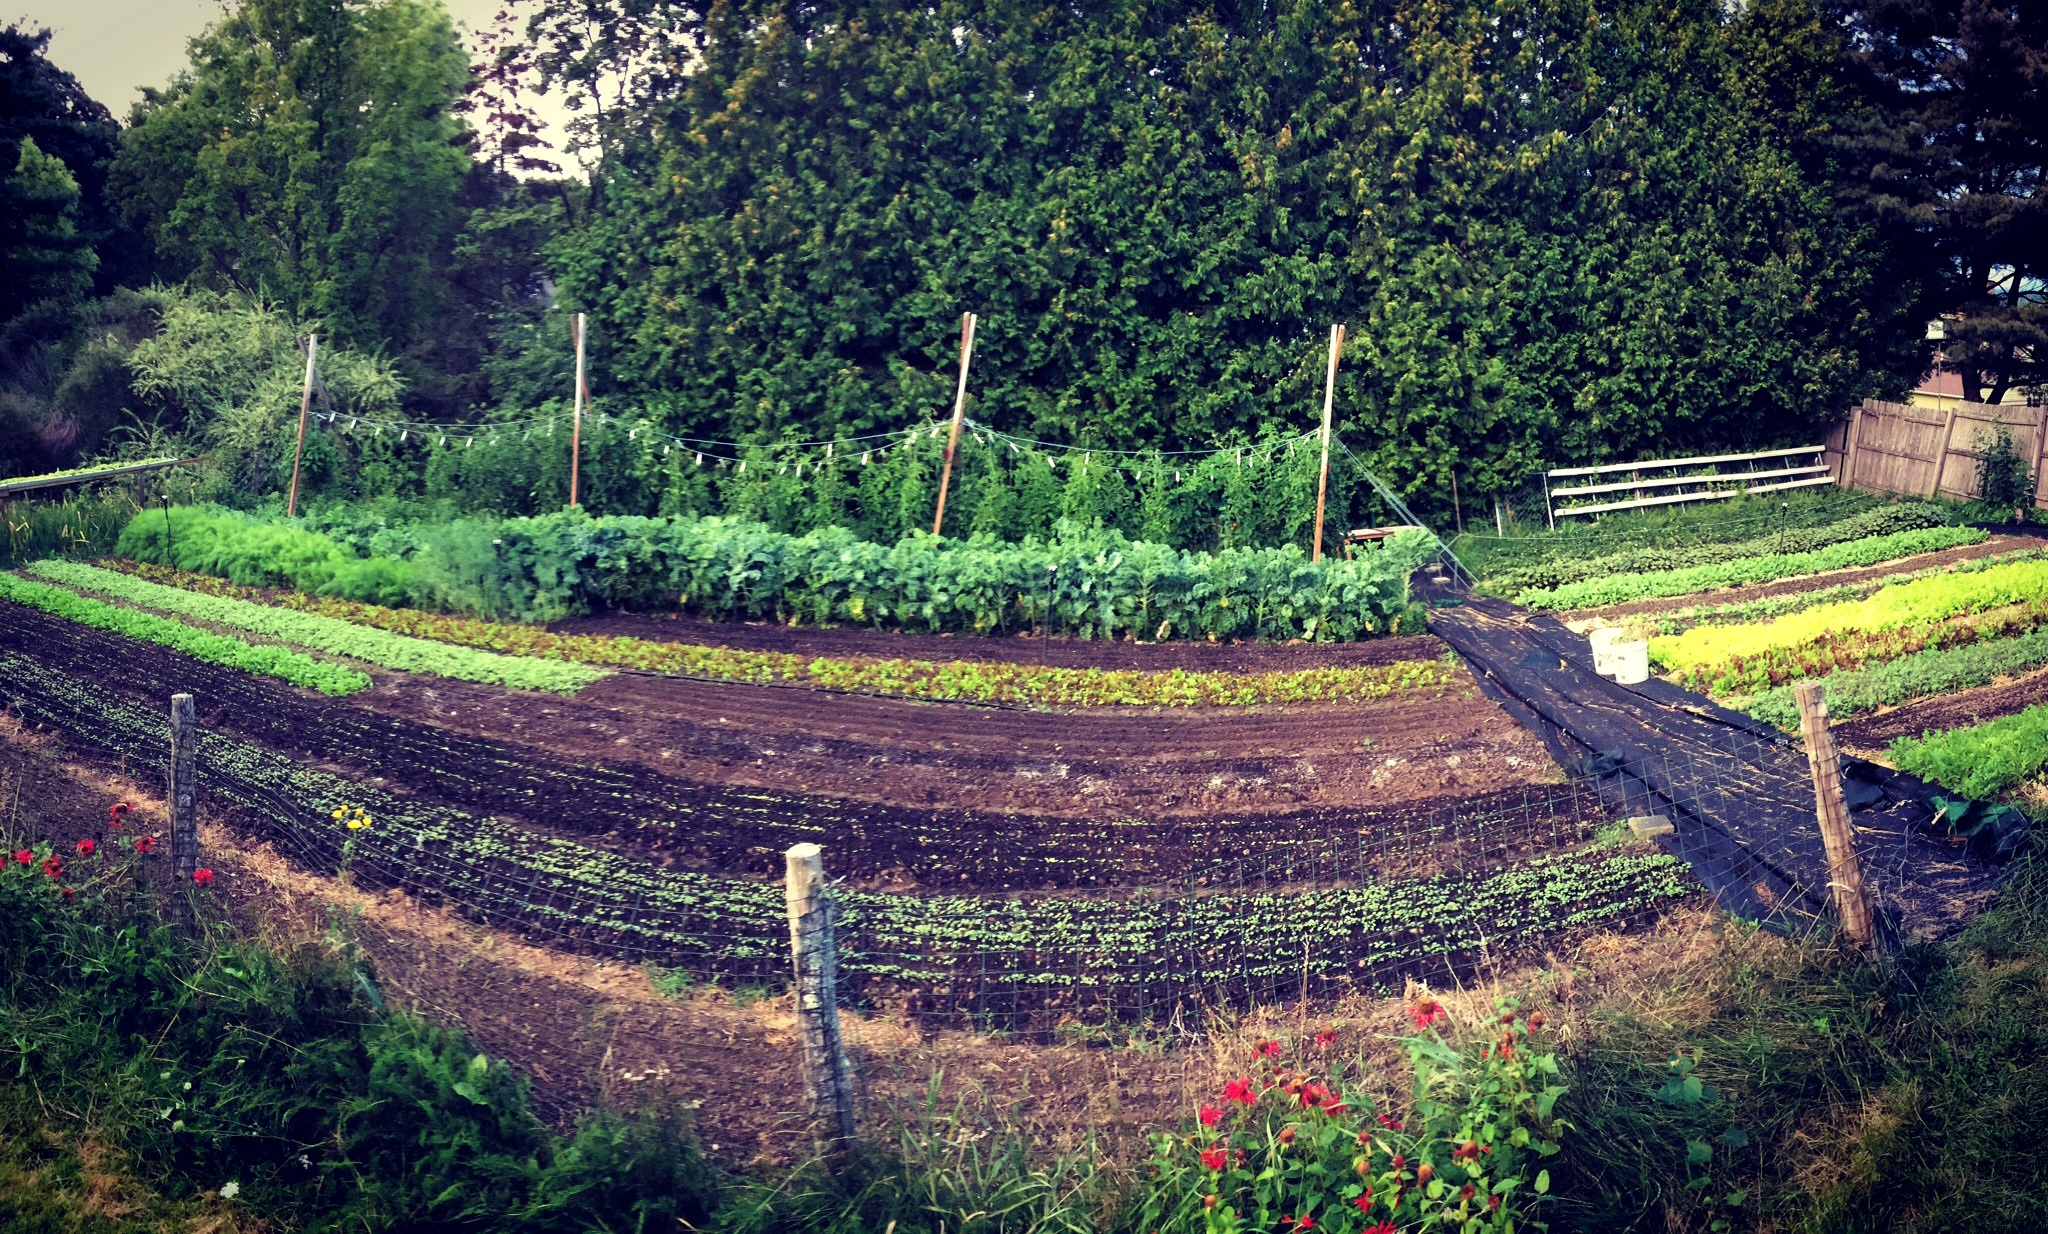 Interested in Starting a Backyard Farming Adventure of Your Own? -